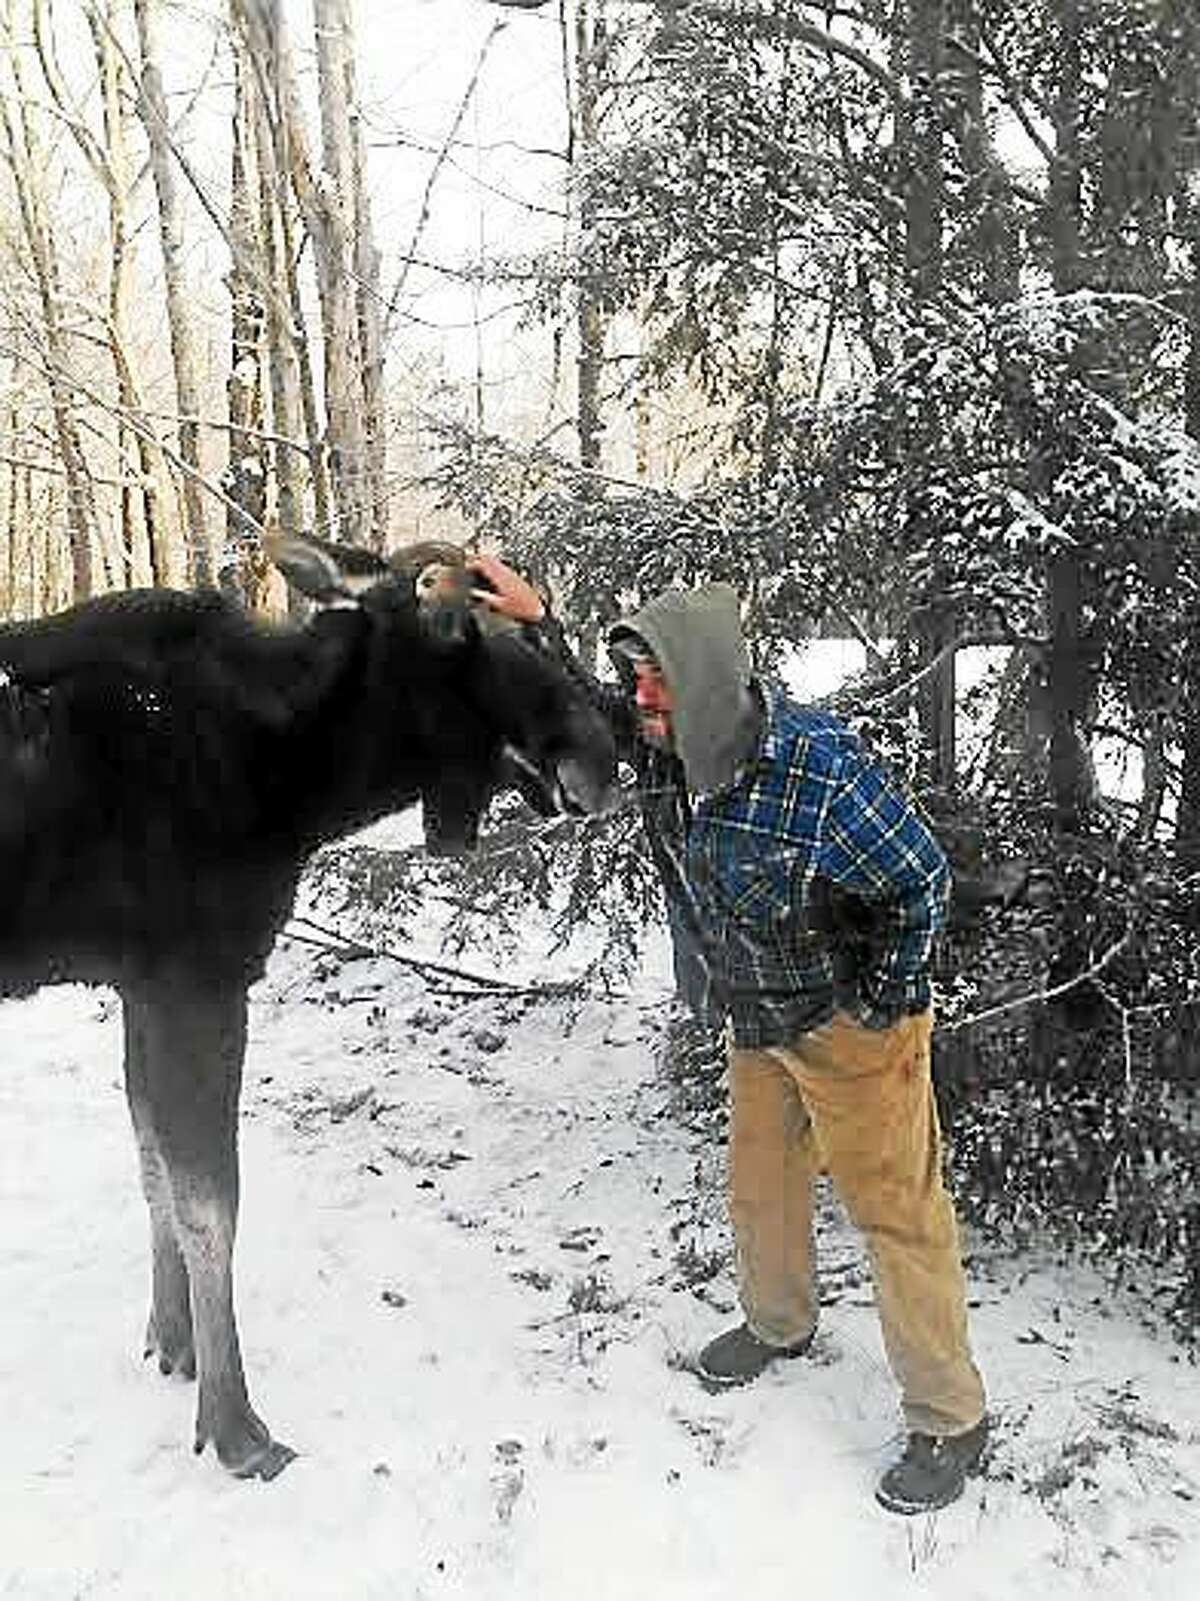 Tolland Highway Department worker Bob Littleton, not only encountered this young male moose near Tolland State Forest, but got close enough to it to give him a peck on the nose.